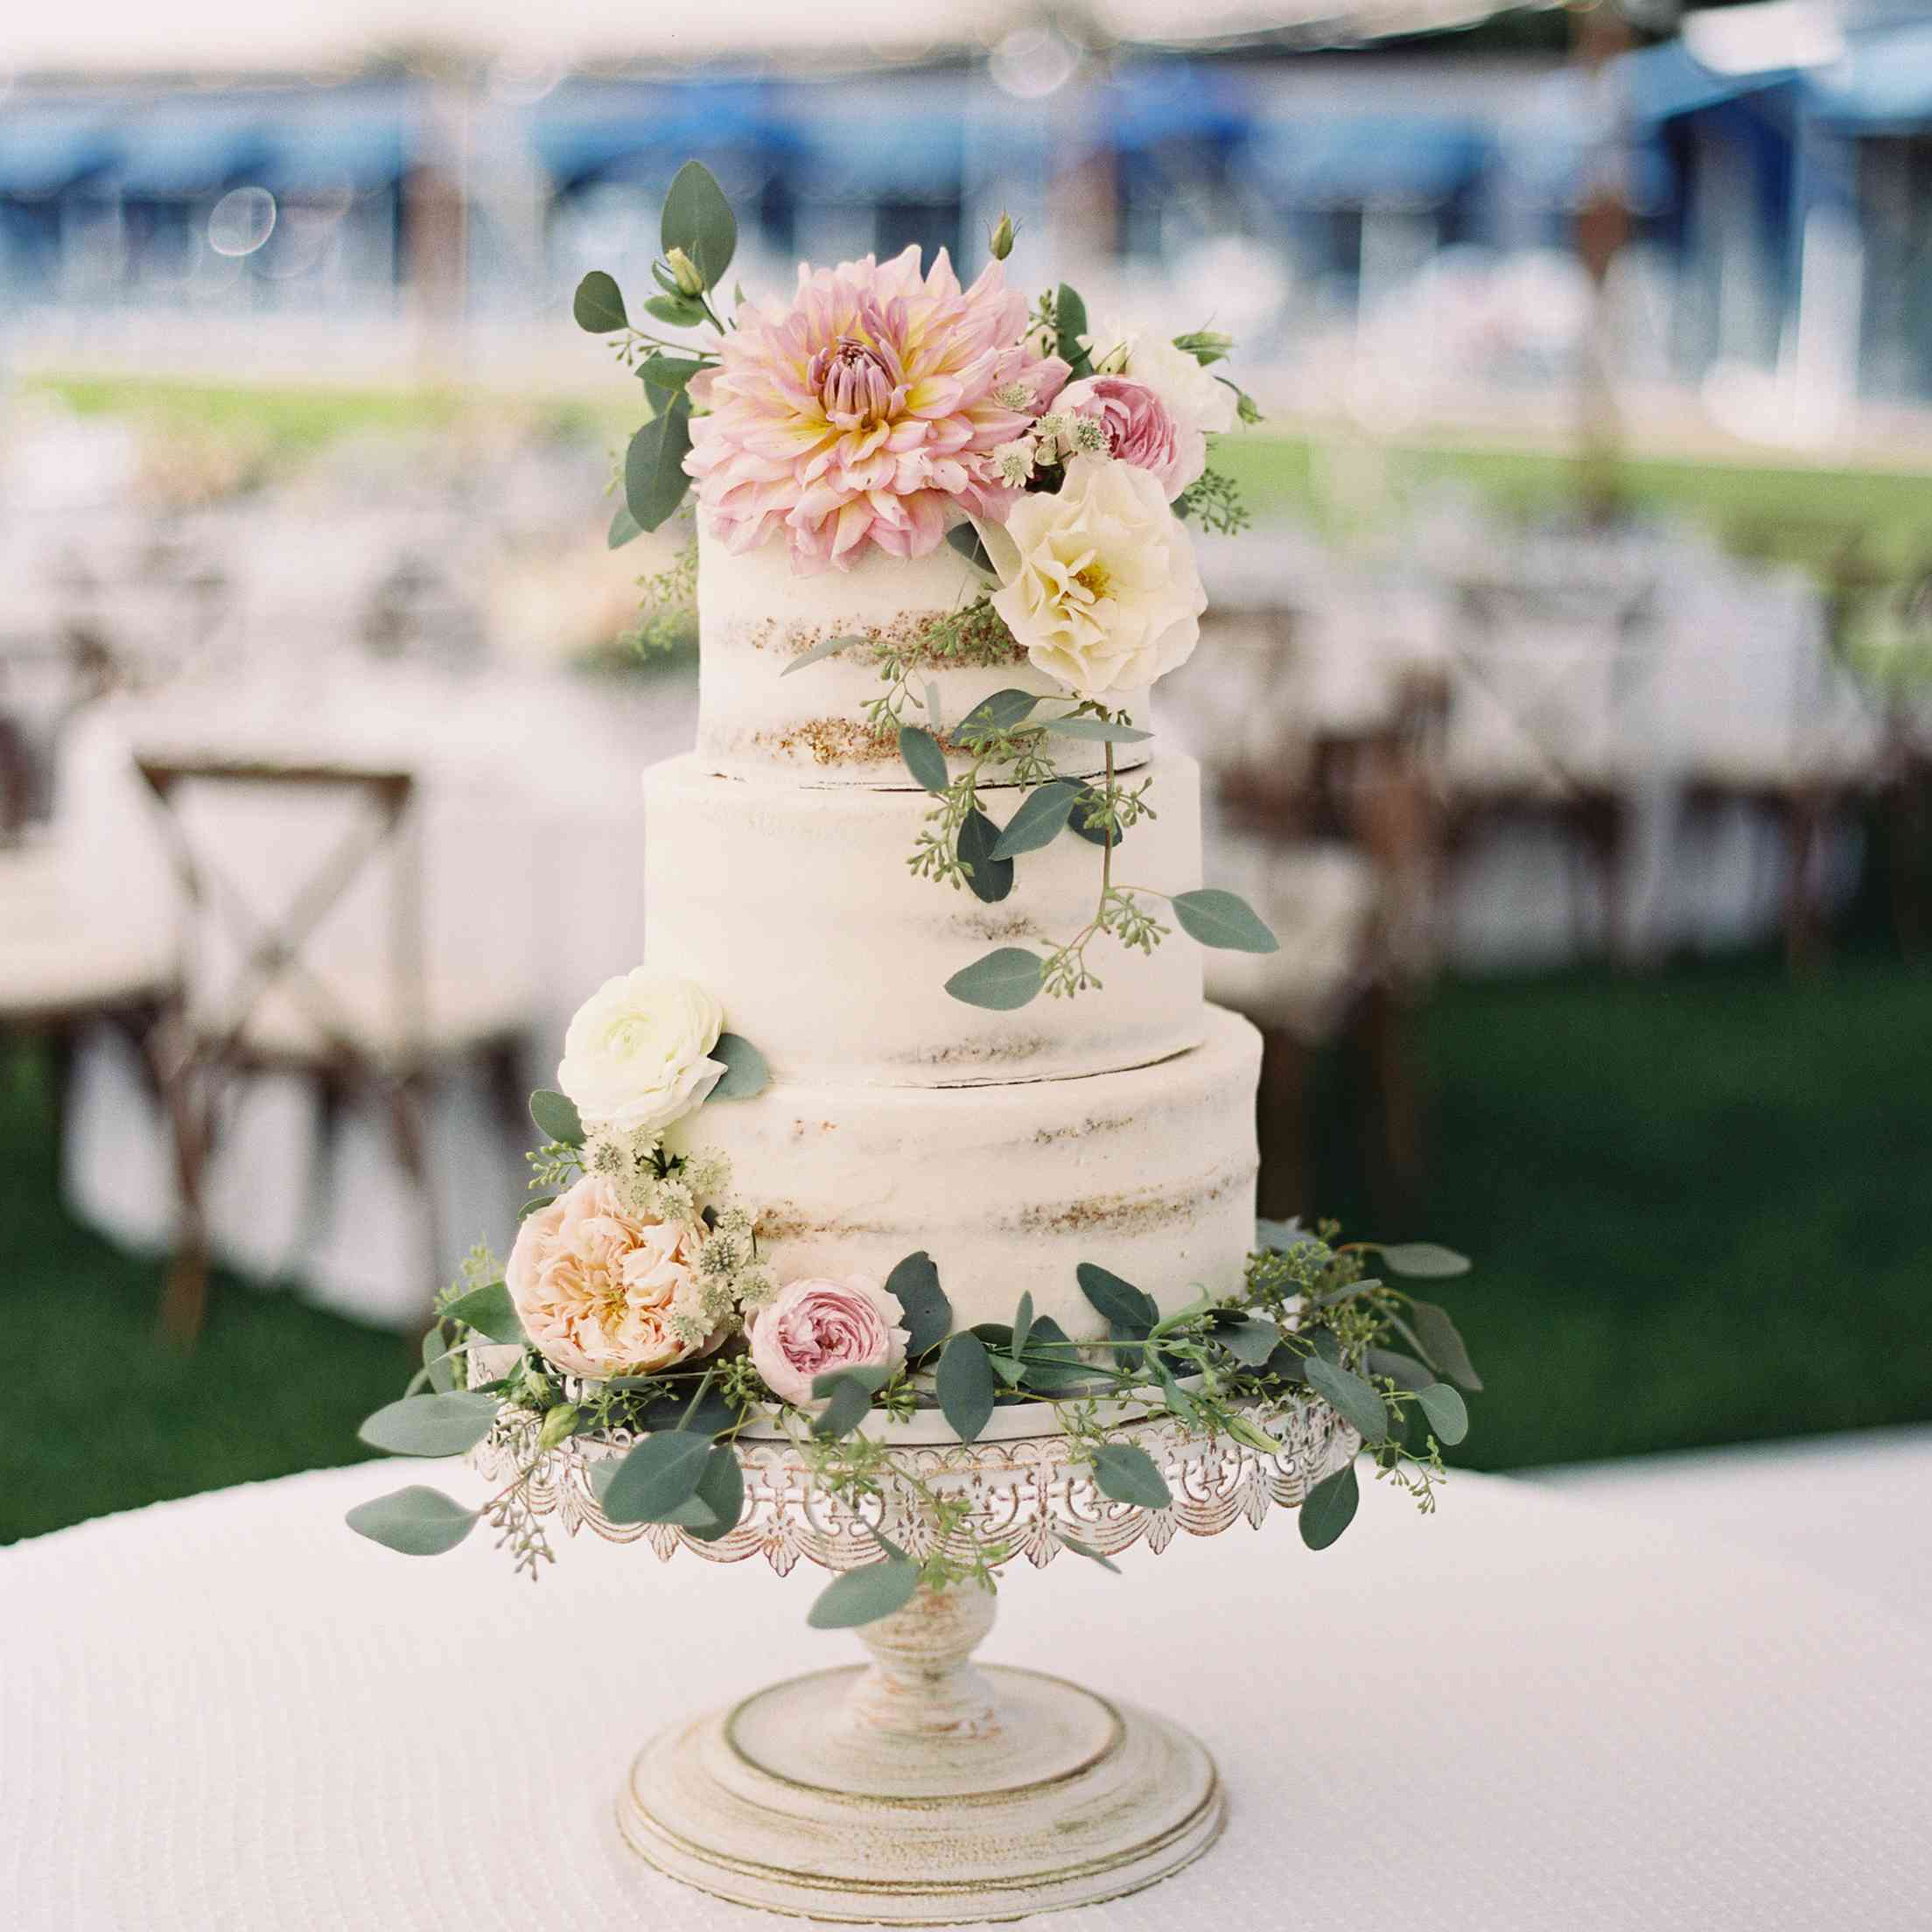 Wedding Cakes With Flowers: 27 Pretty Wedding Cakes That Are Ready For Spring